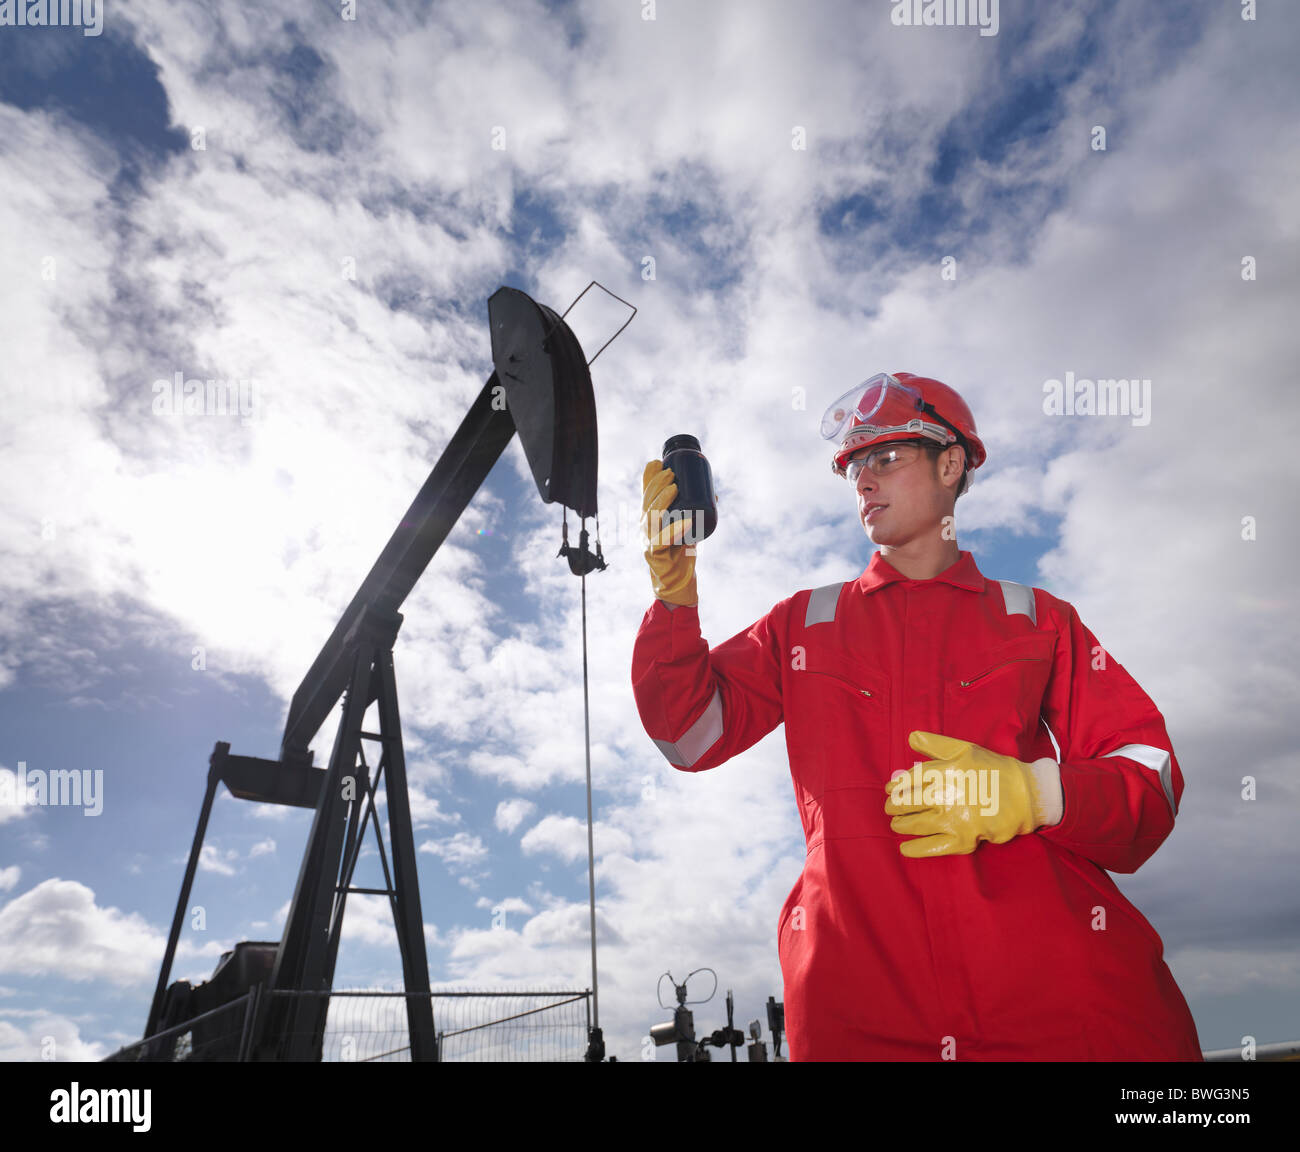 Worker inspecting crude oil at oil well - Stock Image